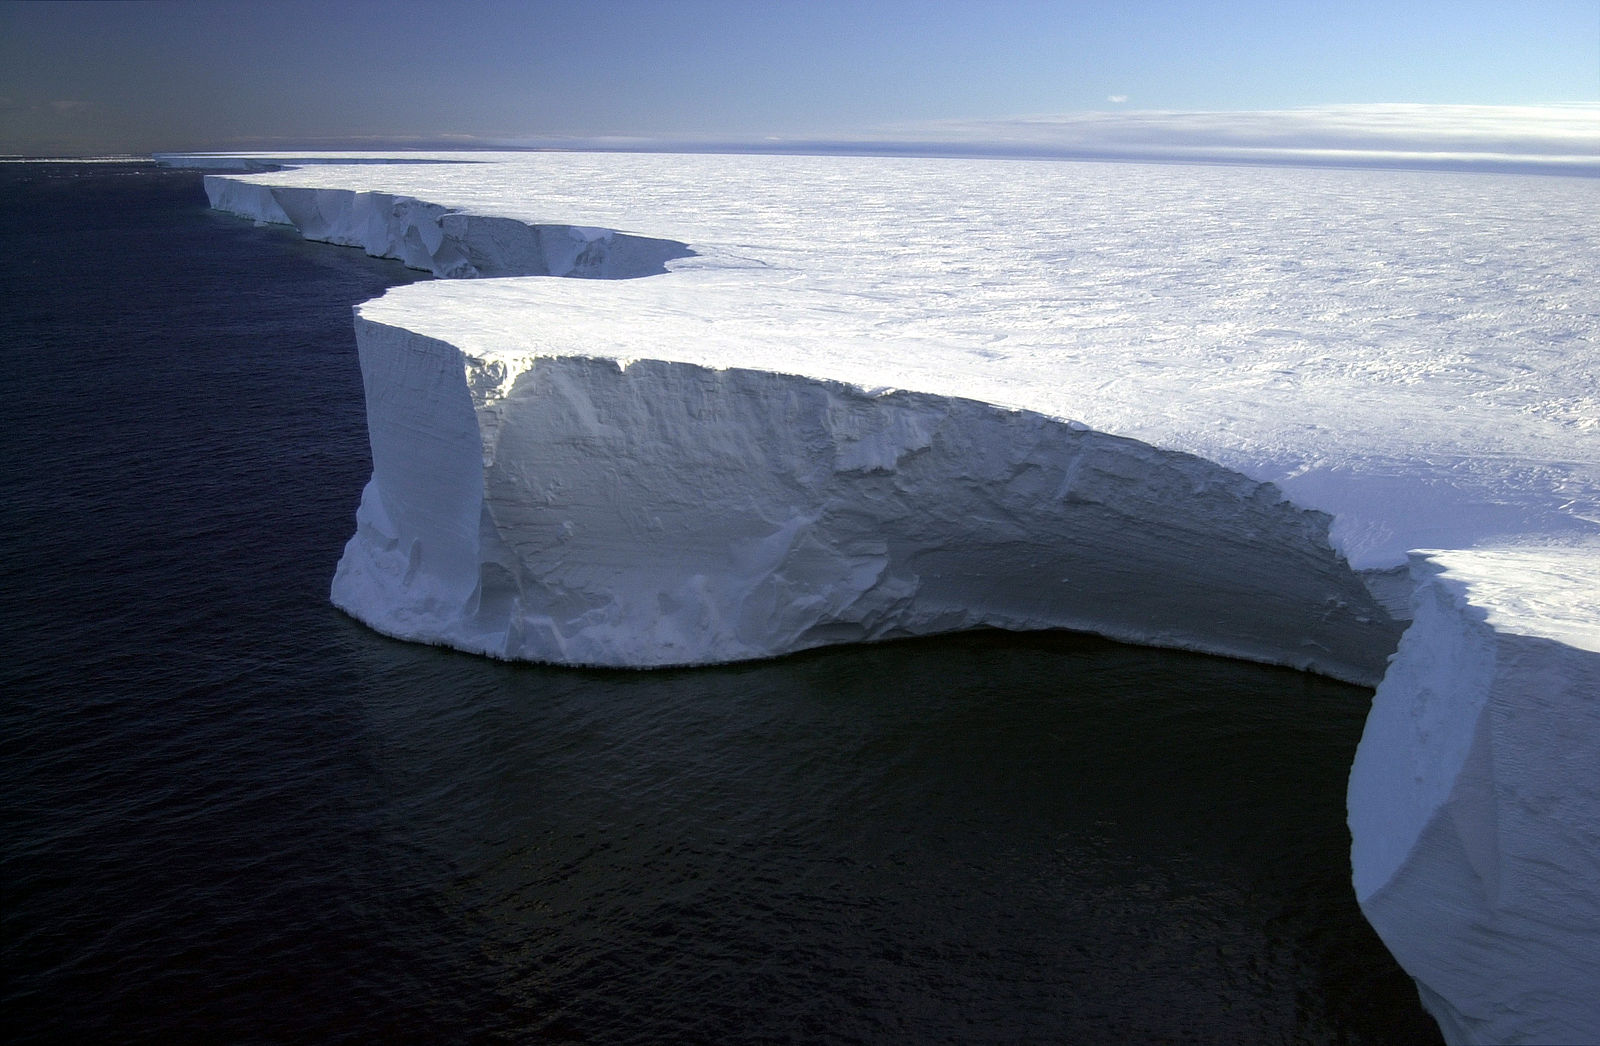 Tipping the iceberg: How Antarctic icebergs influence climate